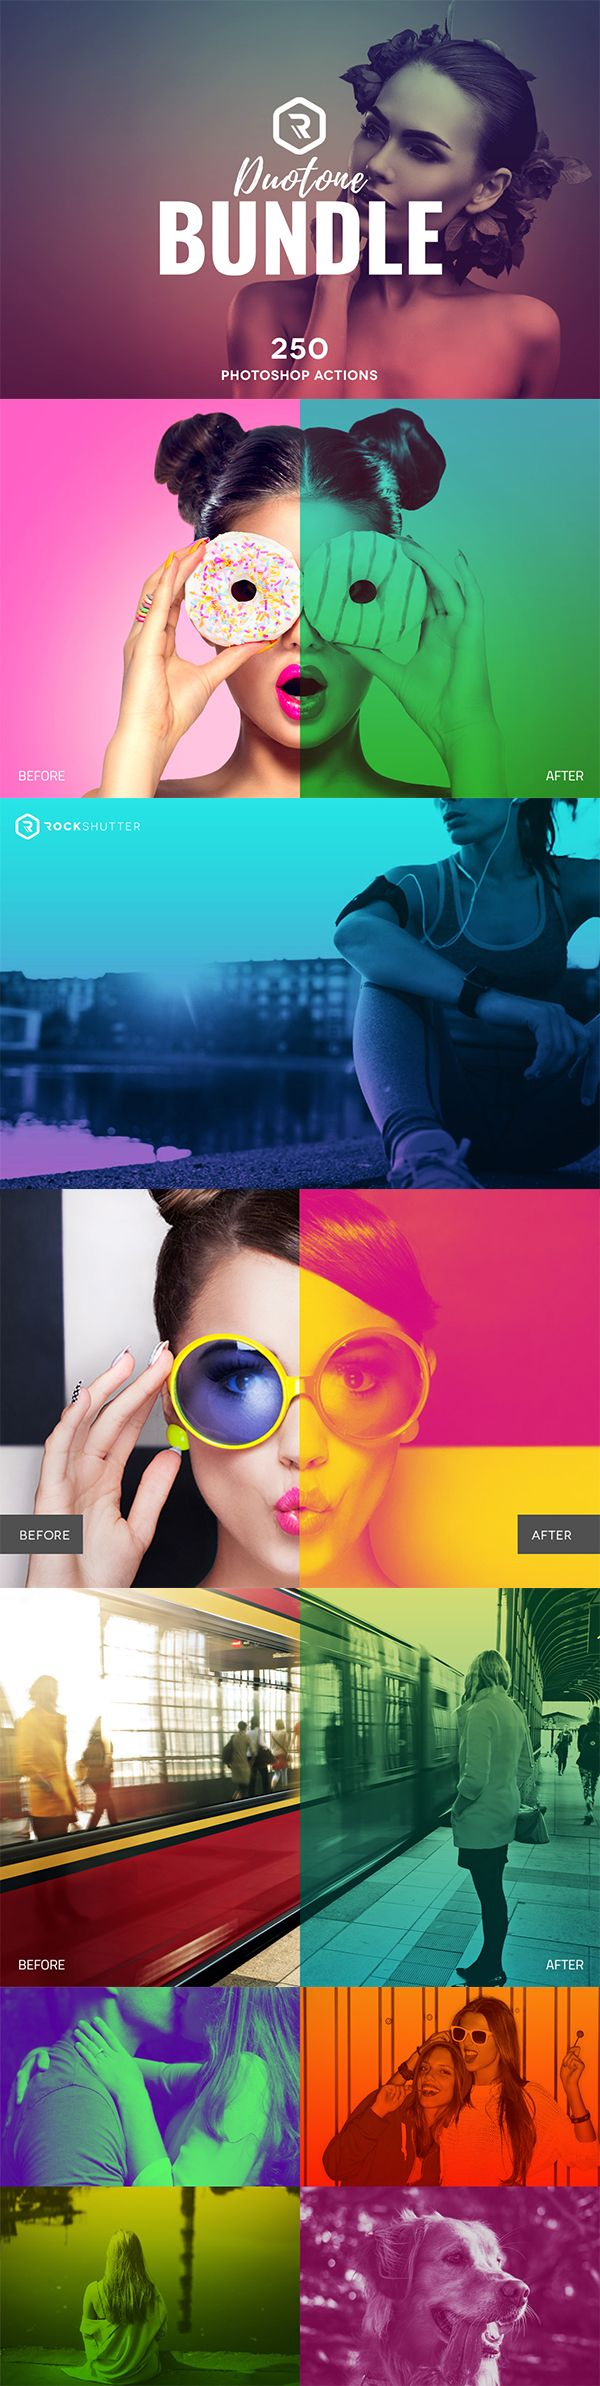 Looking for massive value? Then this big bundle of Premium Photoshop Actions is…